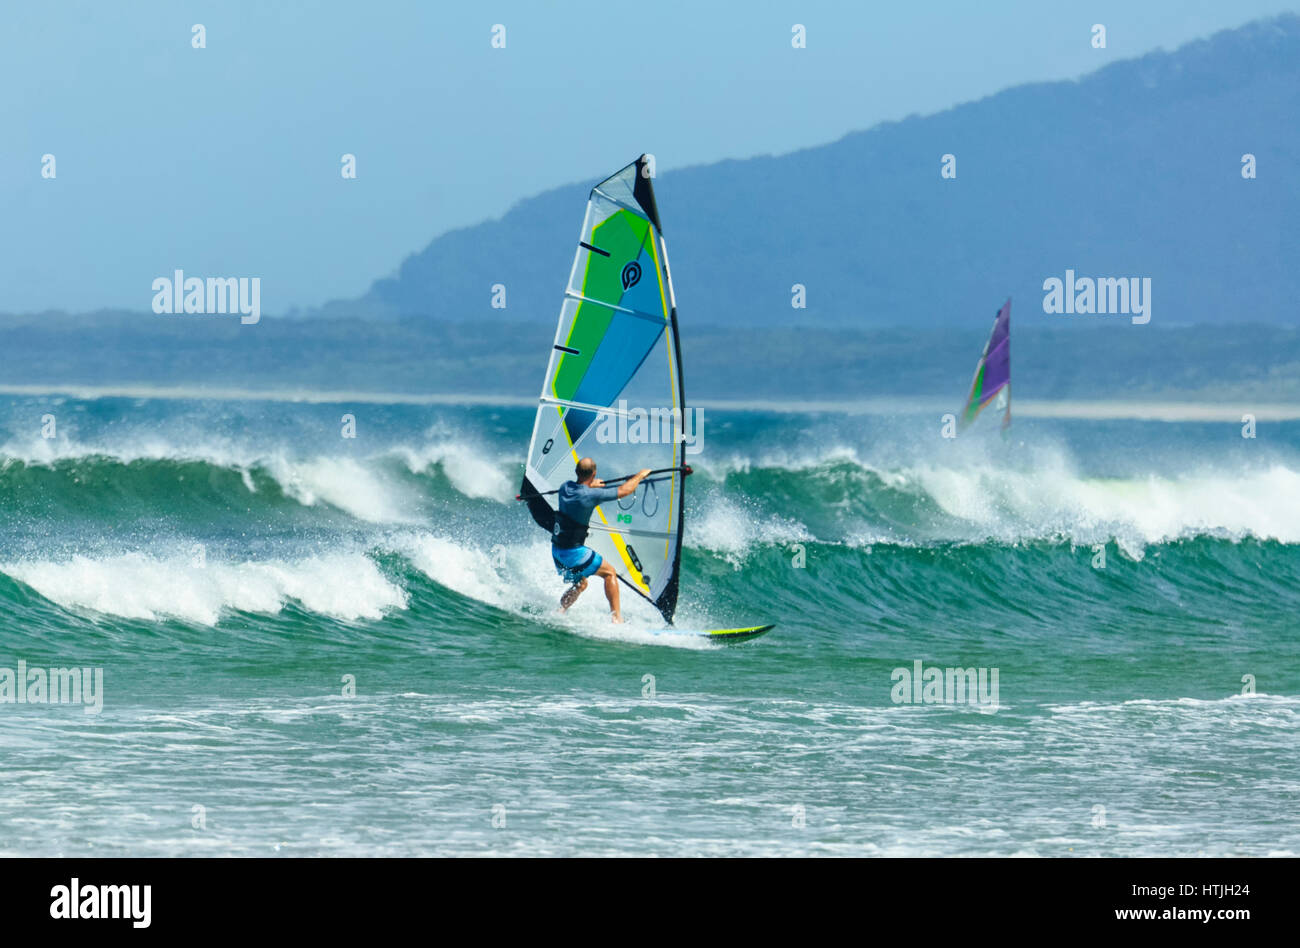 Windsurfer surfing in heavy seas with large waves at Seven Mile Beach, Gerroa, Illawarra Coast, New South Wales, Stock Photo